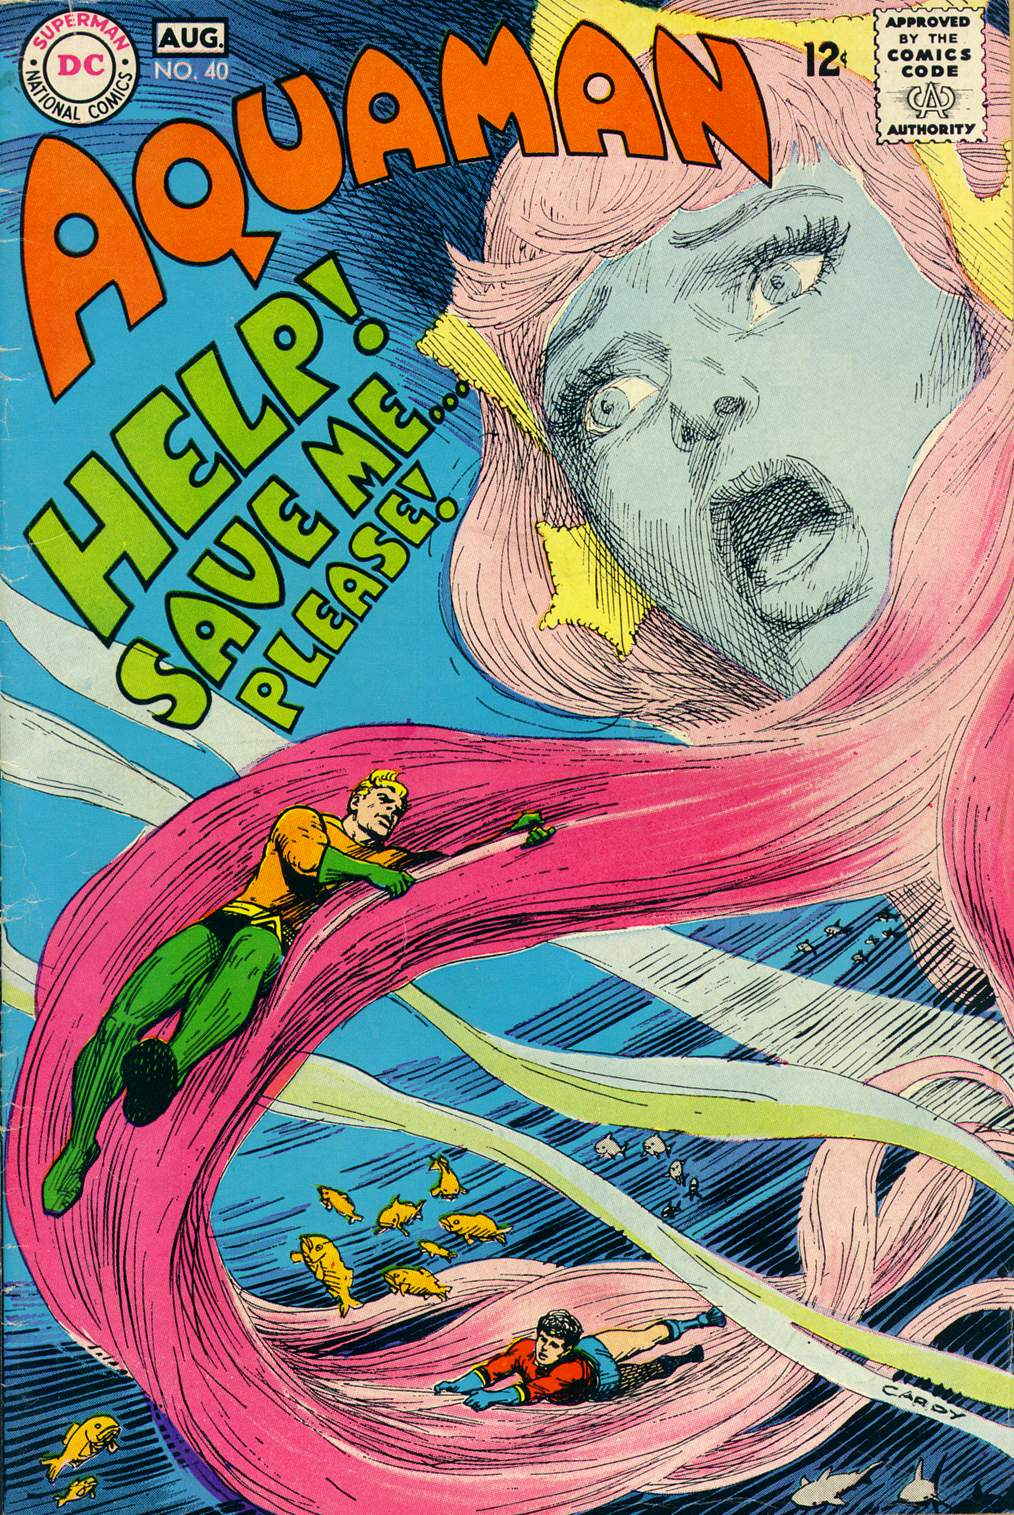 Aquamam #40 by Steve Skeates, Jim Aparo, and Dick Giordano